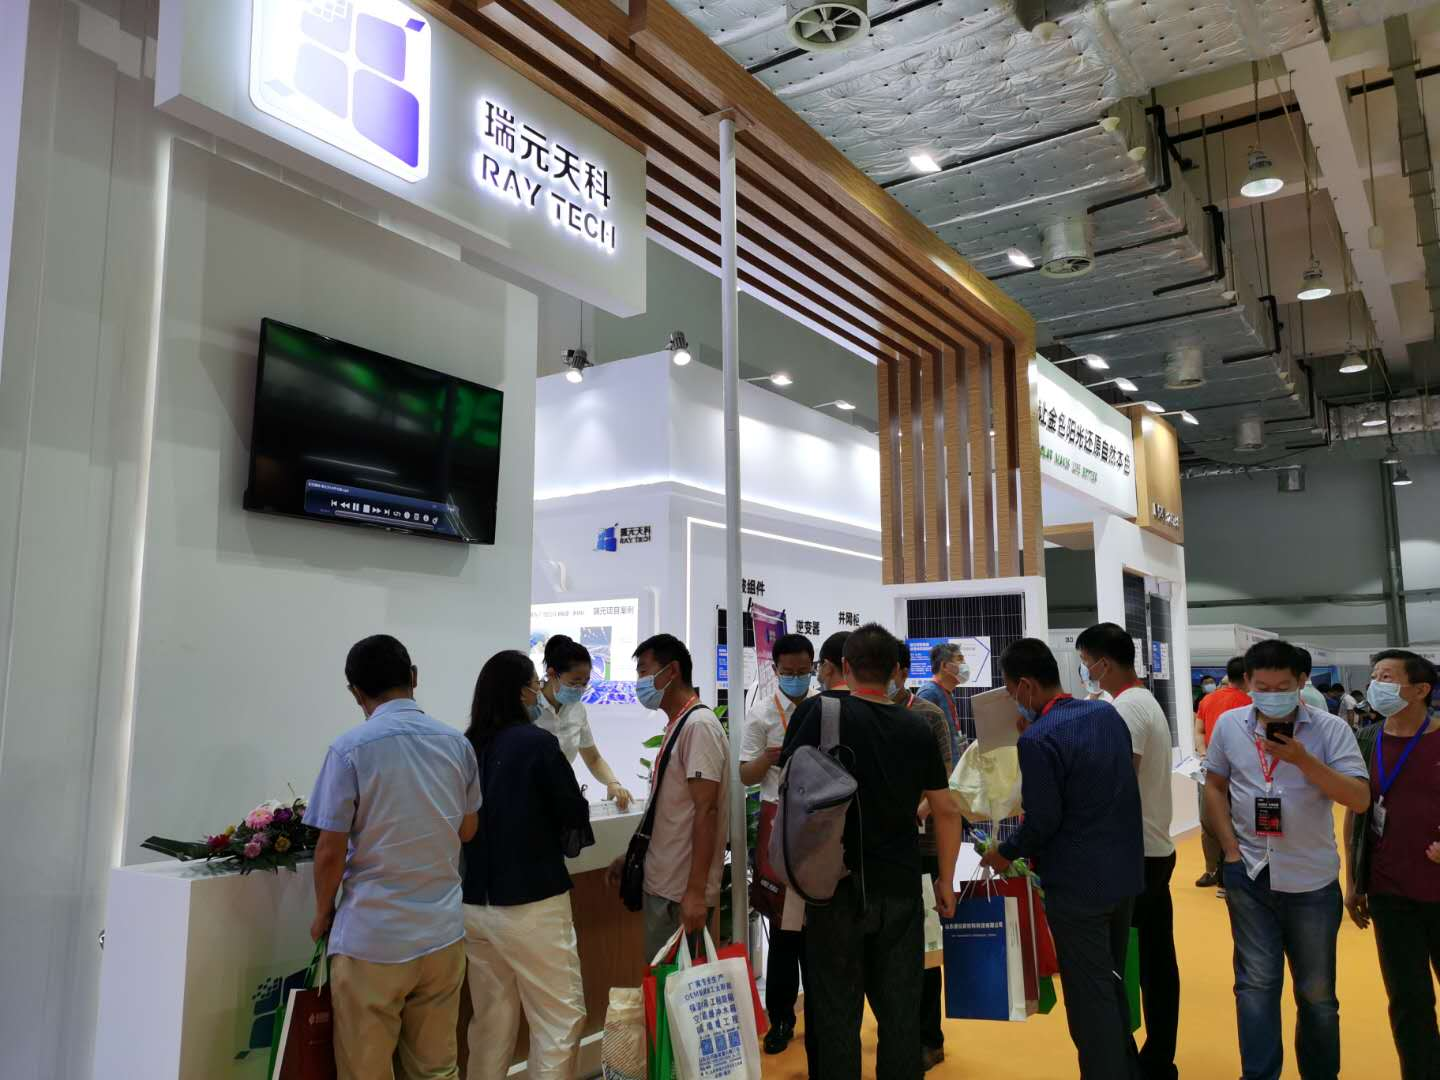 Raytech Takes Part in the Solar Energy Exhibition in Jinan and Enjoys Wide Popularity at Its TikTok